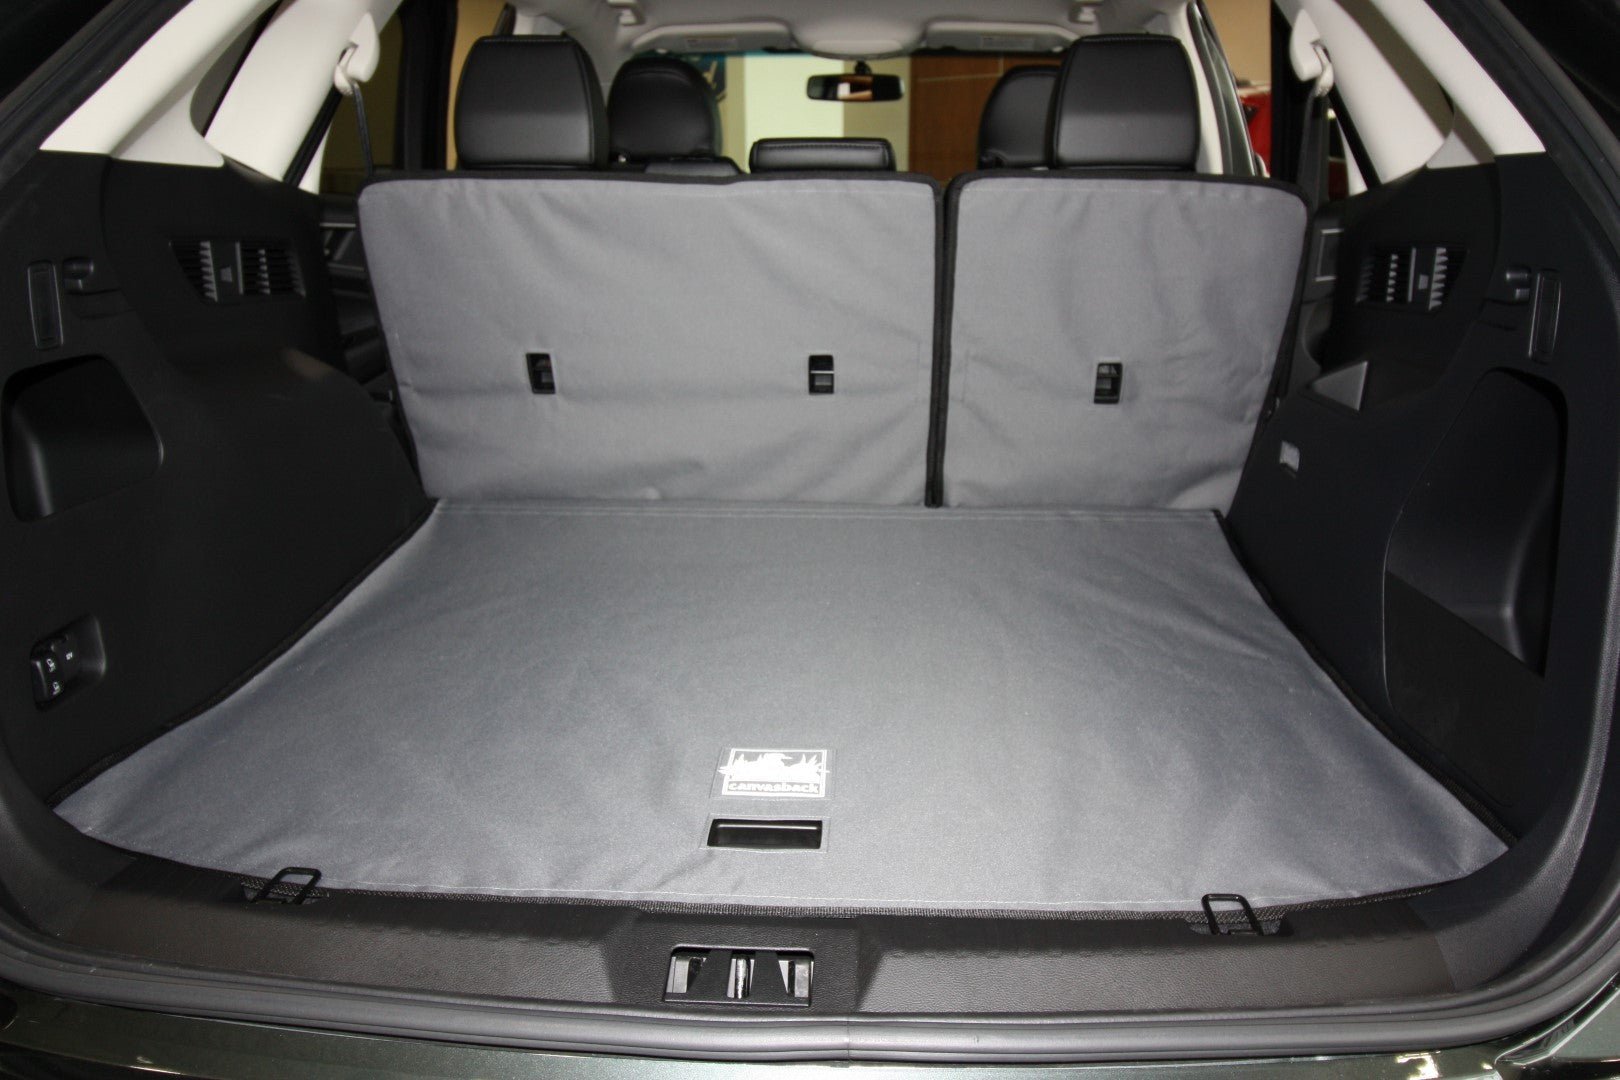 Ford Edge Canvasback Cargo Liner  2015-2020 FREE SHIPPING